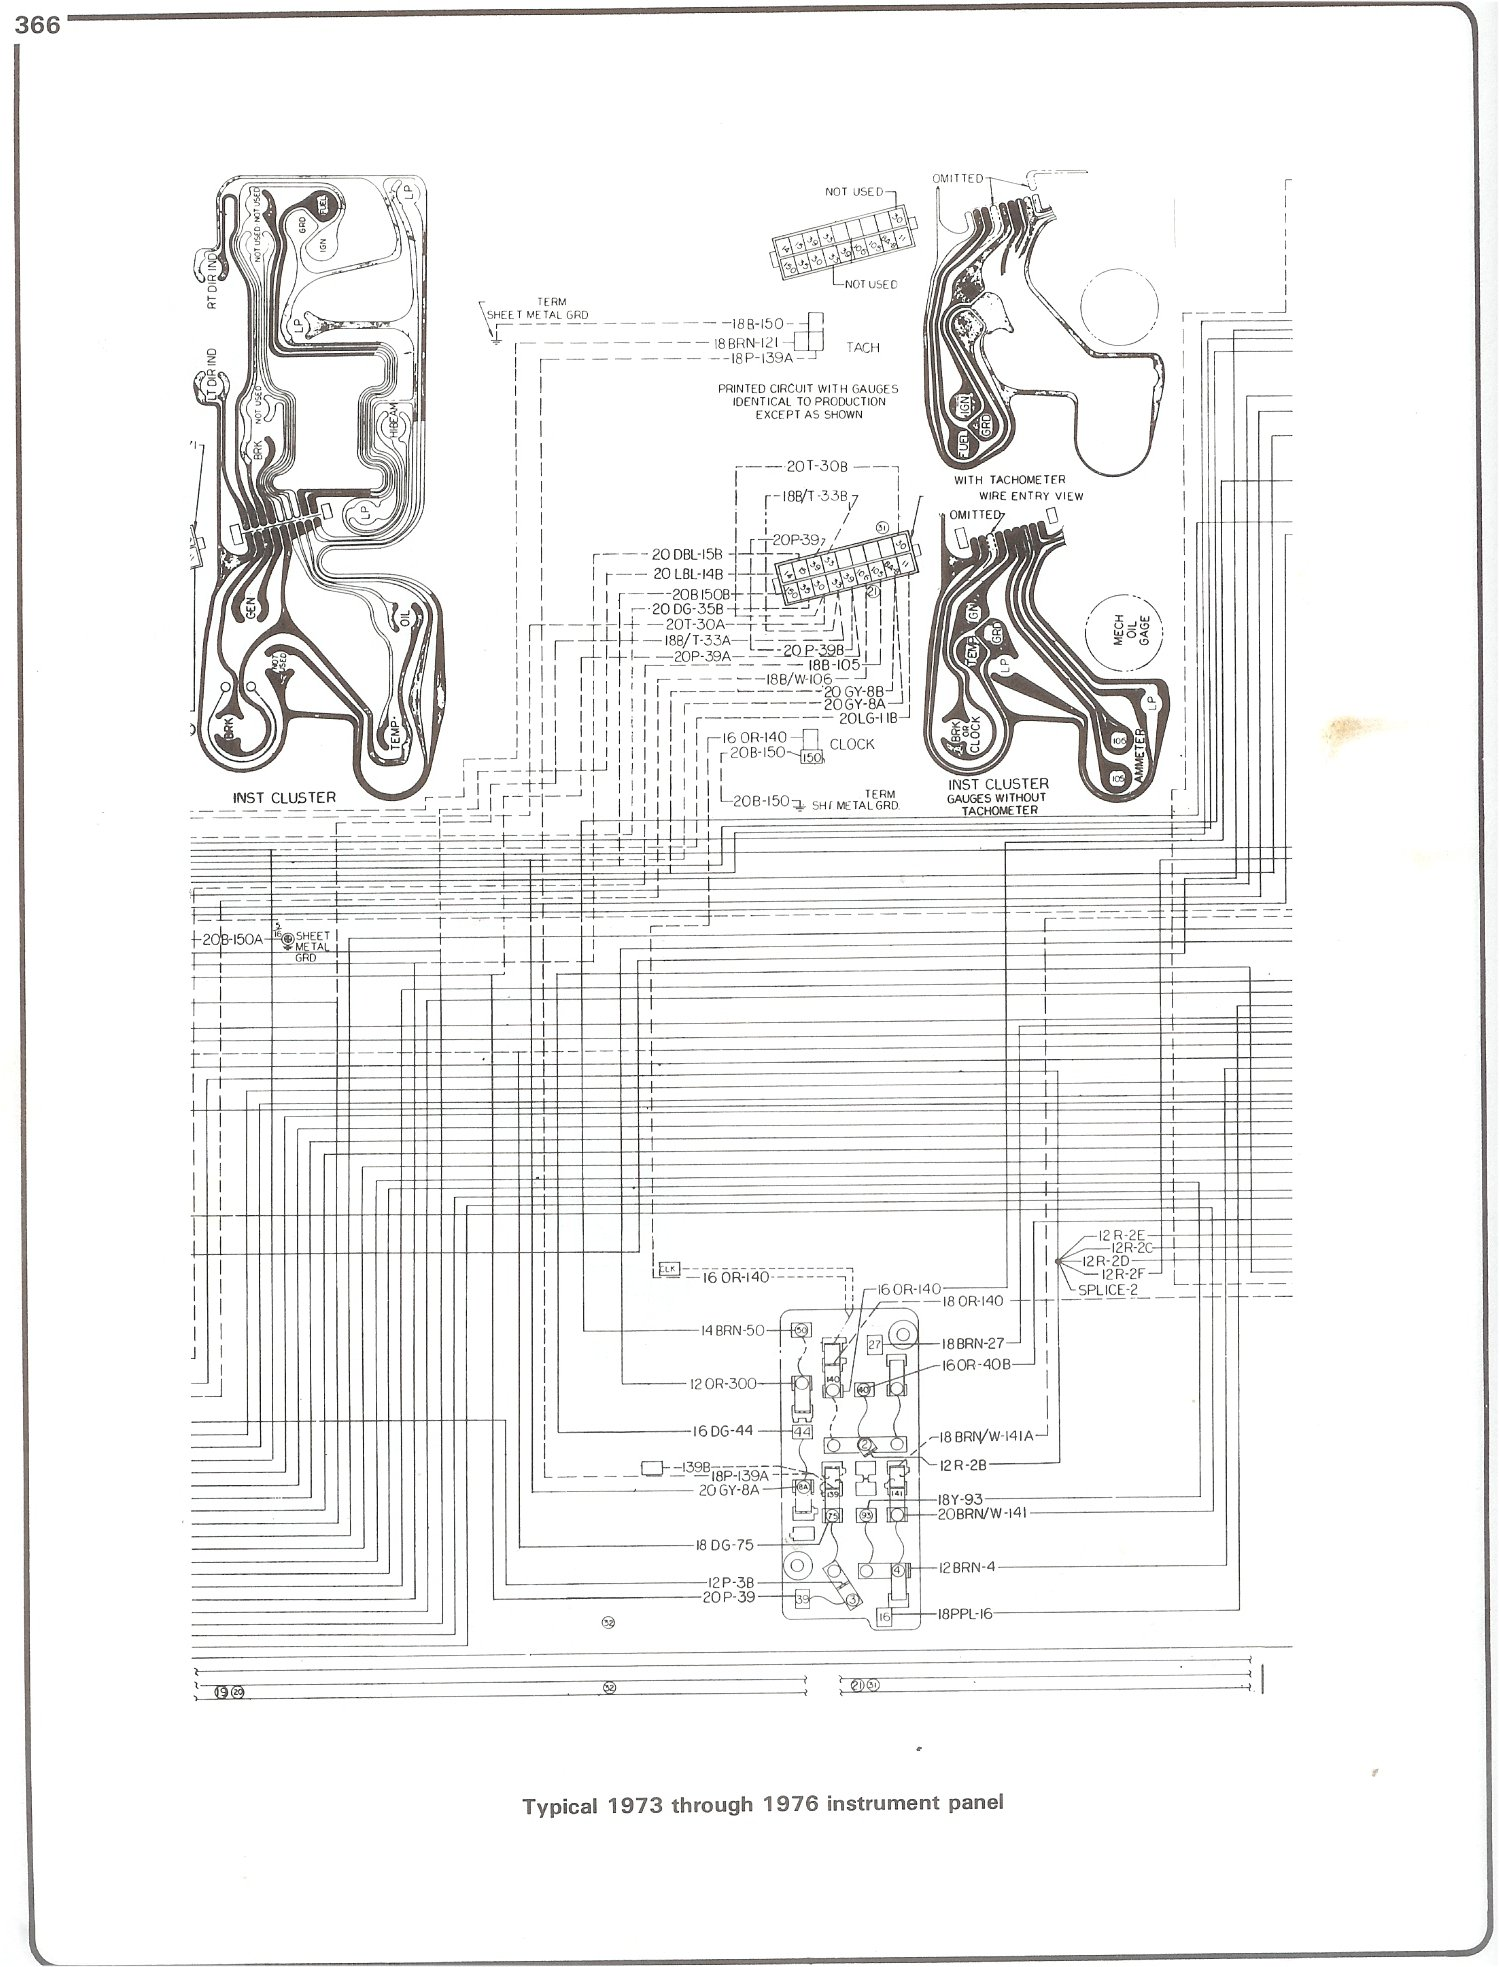 1973 Gmc Sierra Engine Wiring Diagram Starting Know About Complete 73 87 Diagrams Rh Forum 87chevytrucks Com